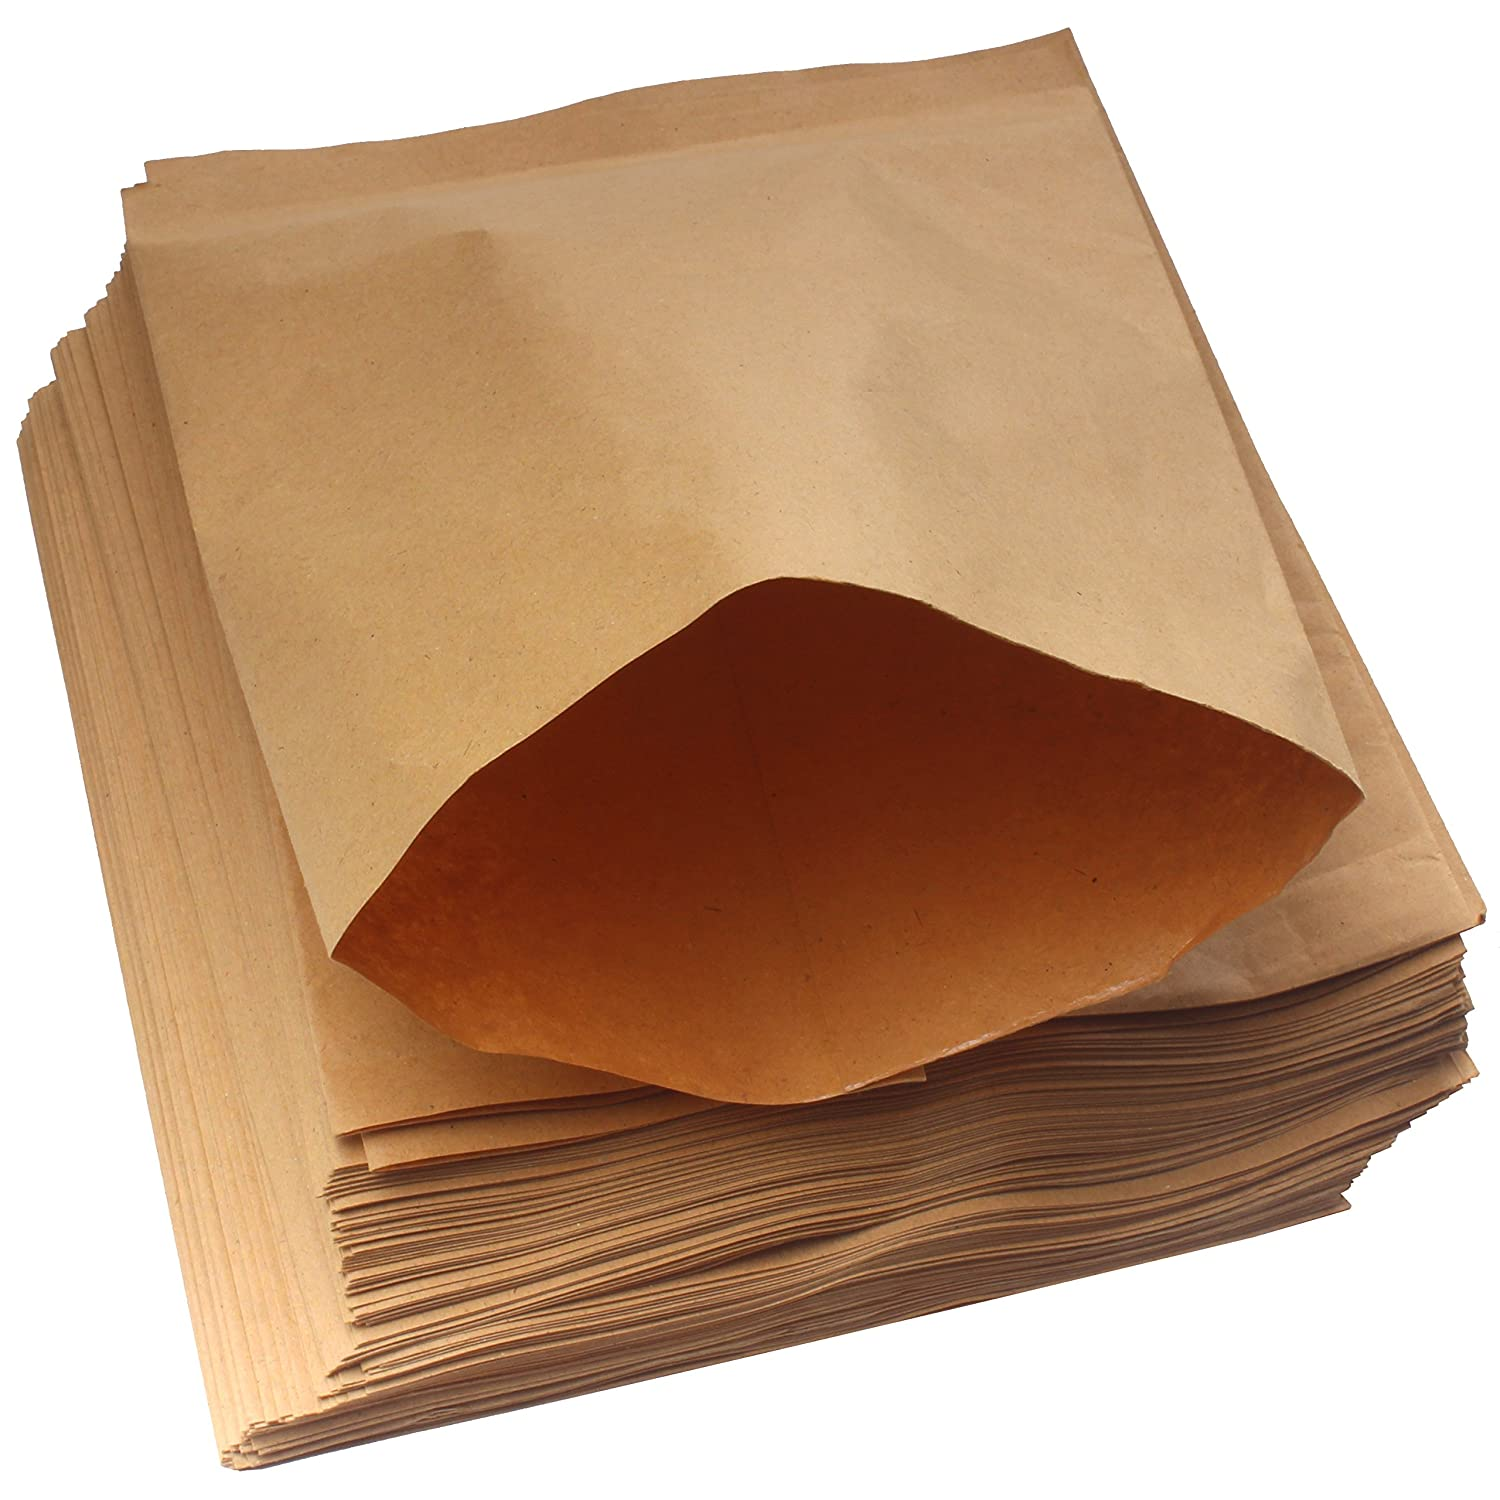 ZICOME 100 Pack Brown Kraft Paper Bags for Candy Bar Treat Snack Cookie Goodie, 6.4 x 8 Inch 4336879657